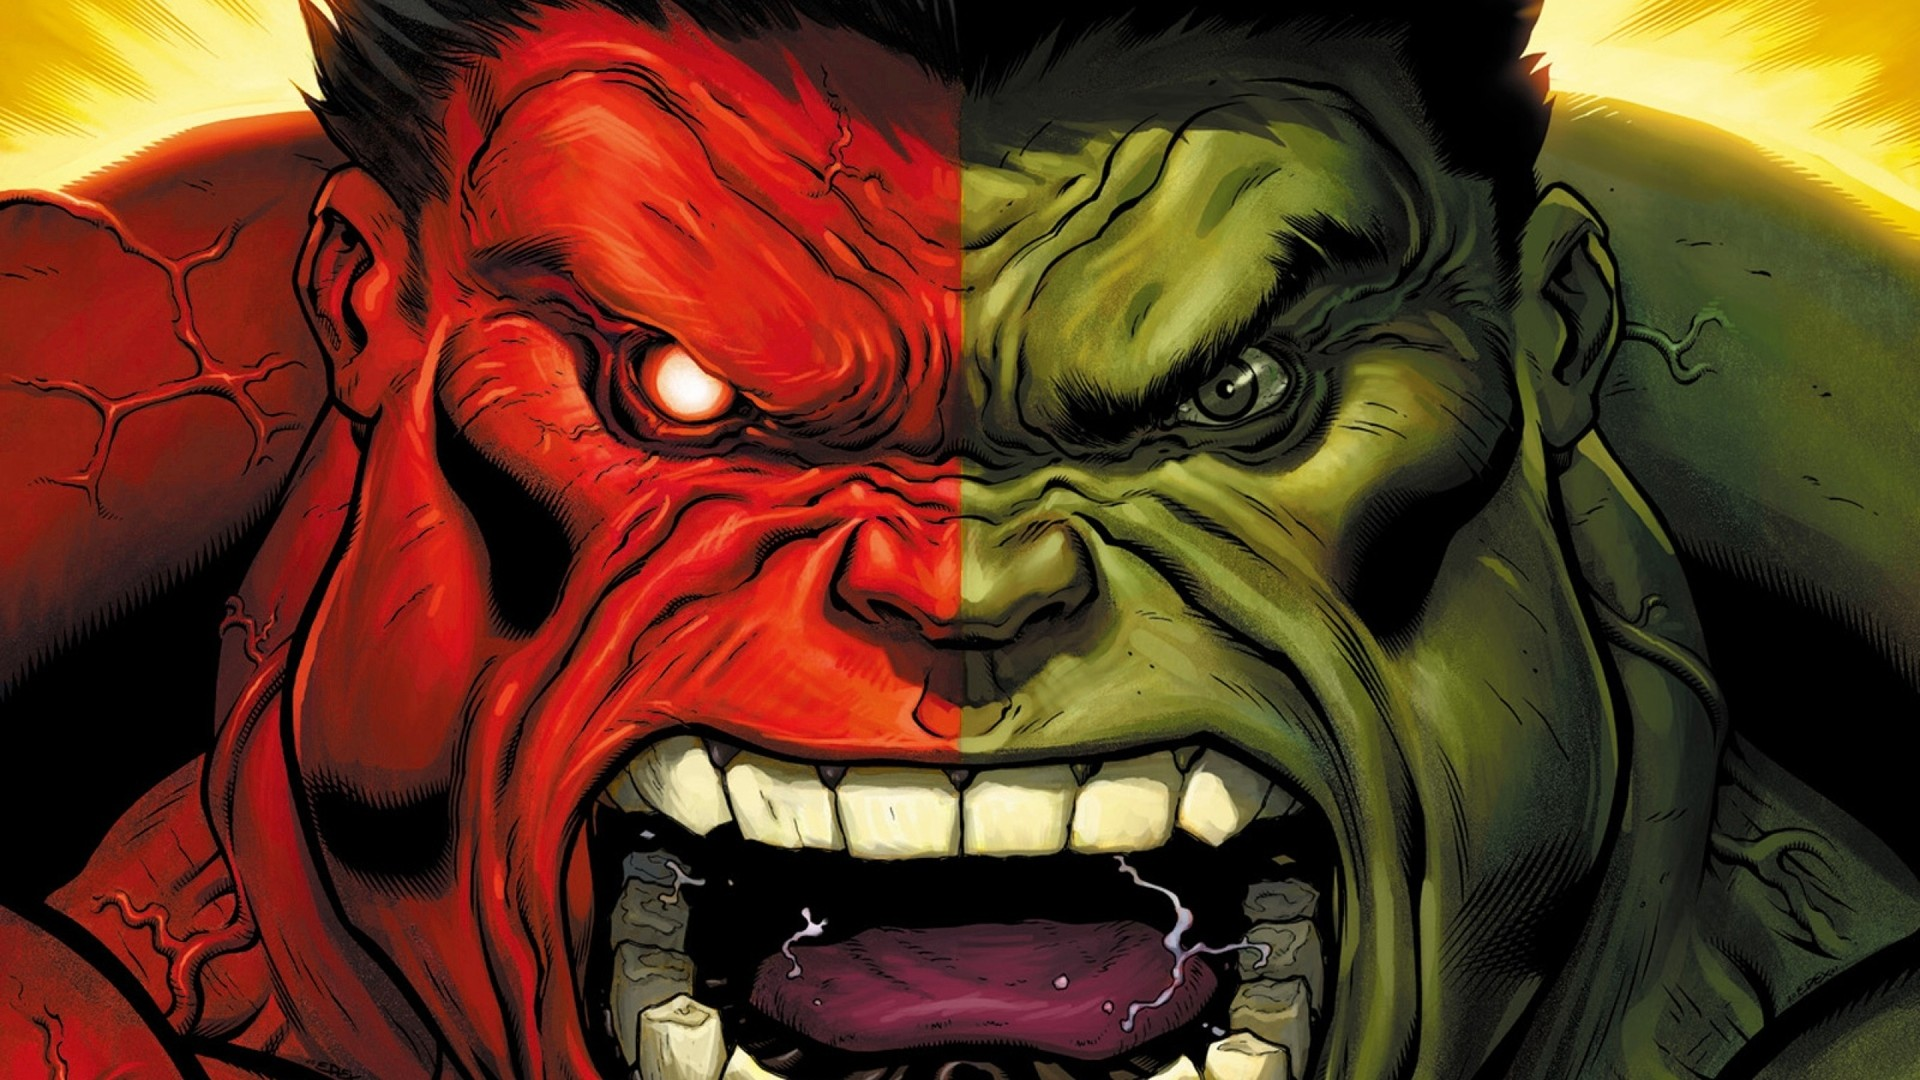 Red Hulk marvel comics HD Wallpaper